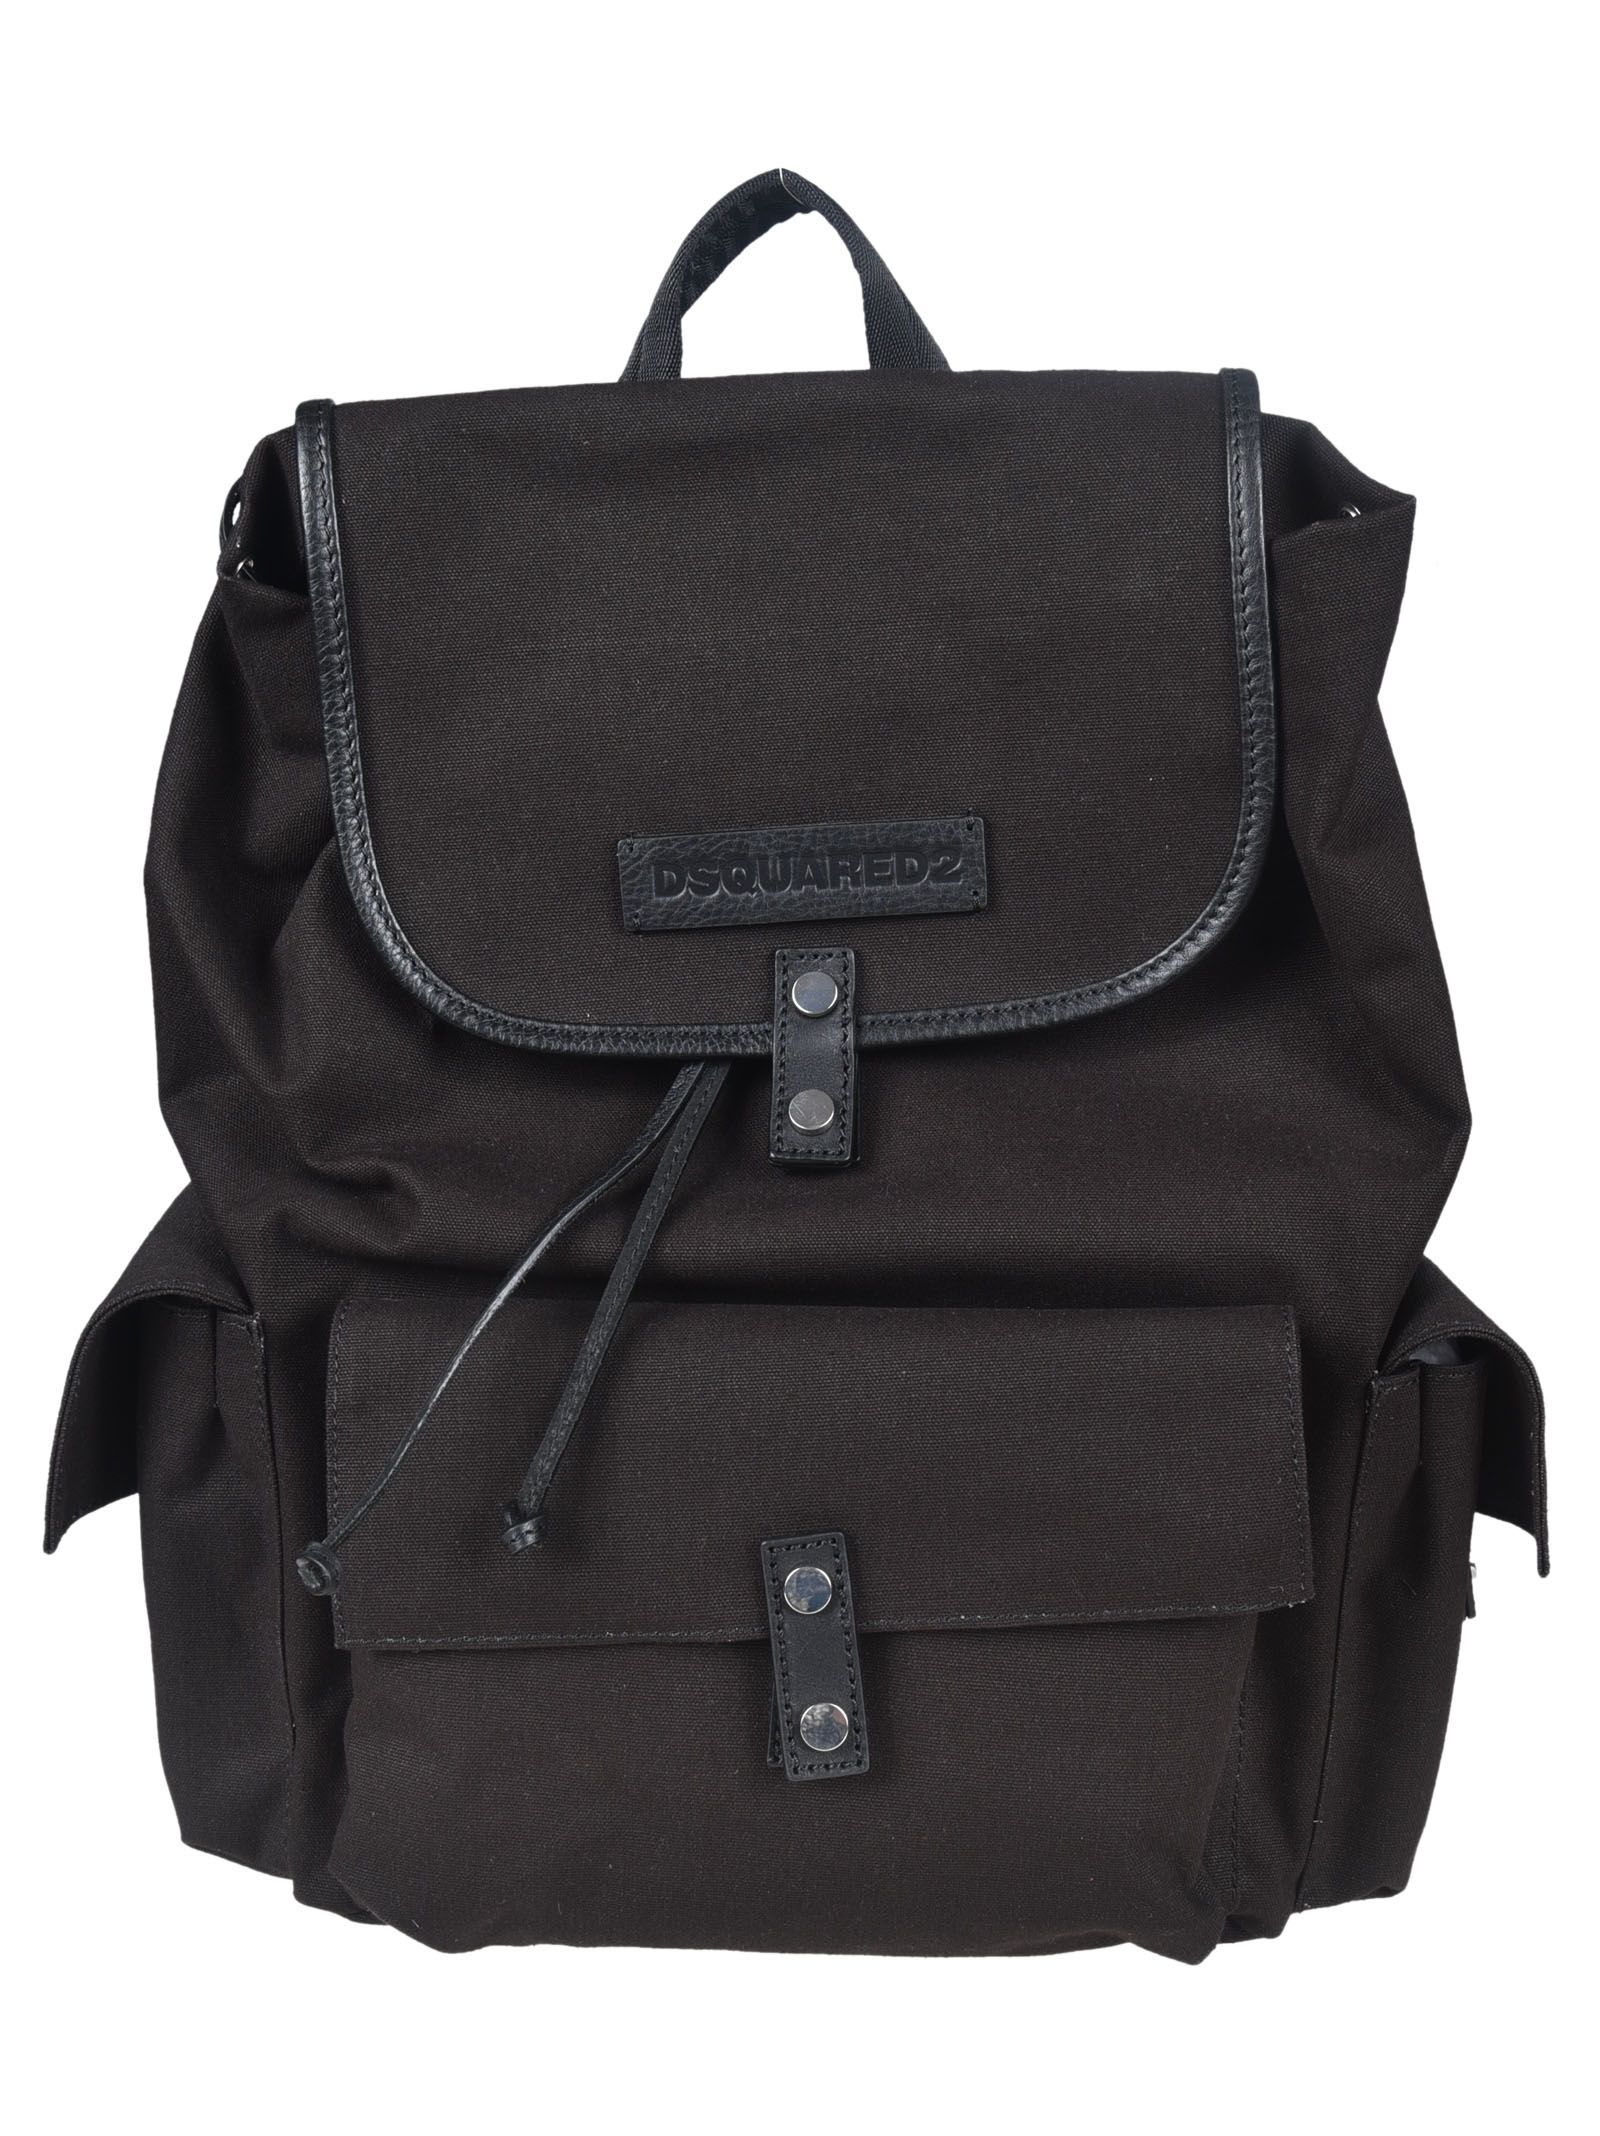 2883eebb56 DSQUARED2 MILITARY BACKPACK.  dsquared2  bags  leather  backpacks  cotton